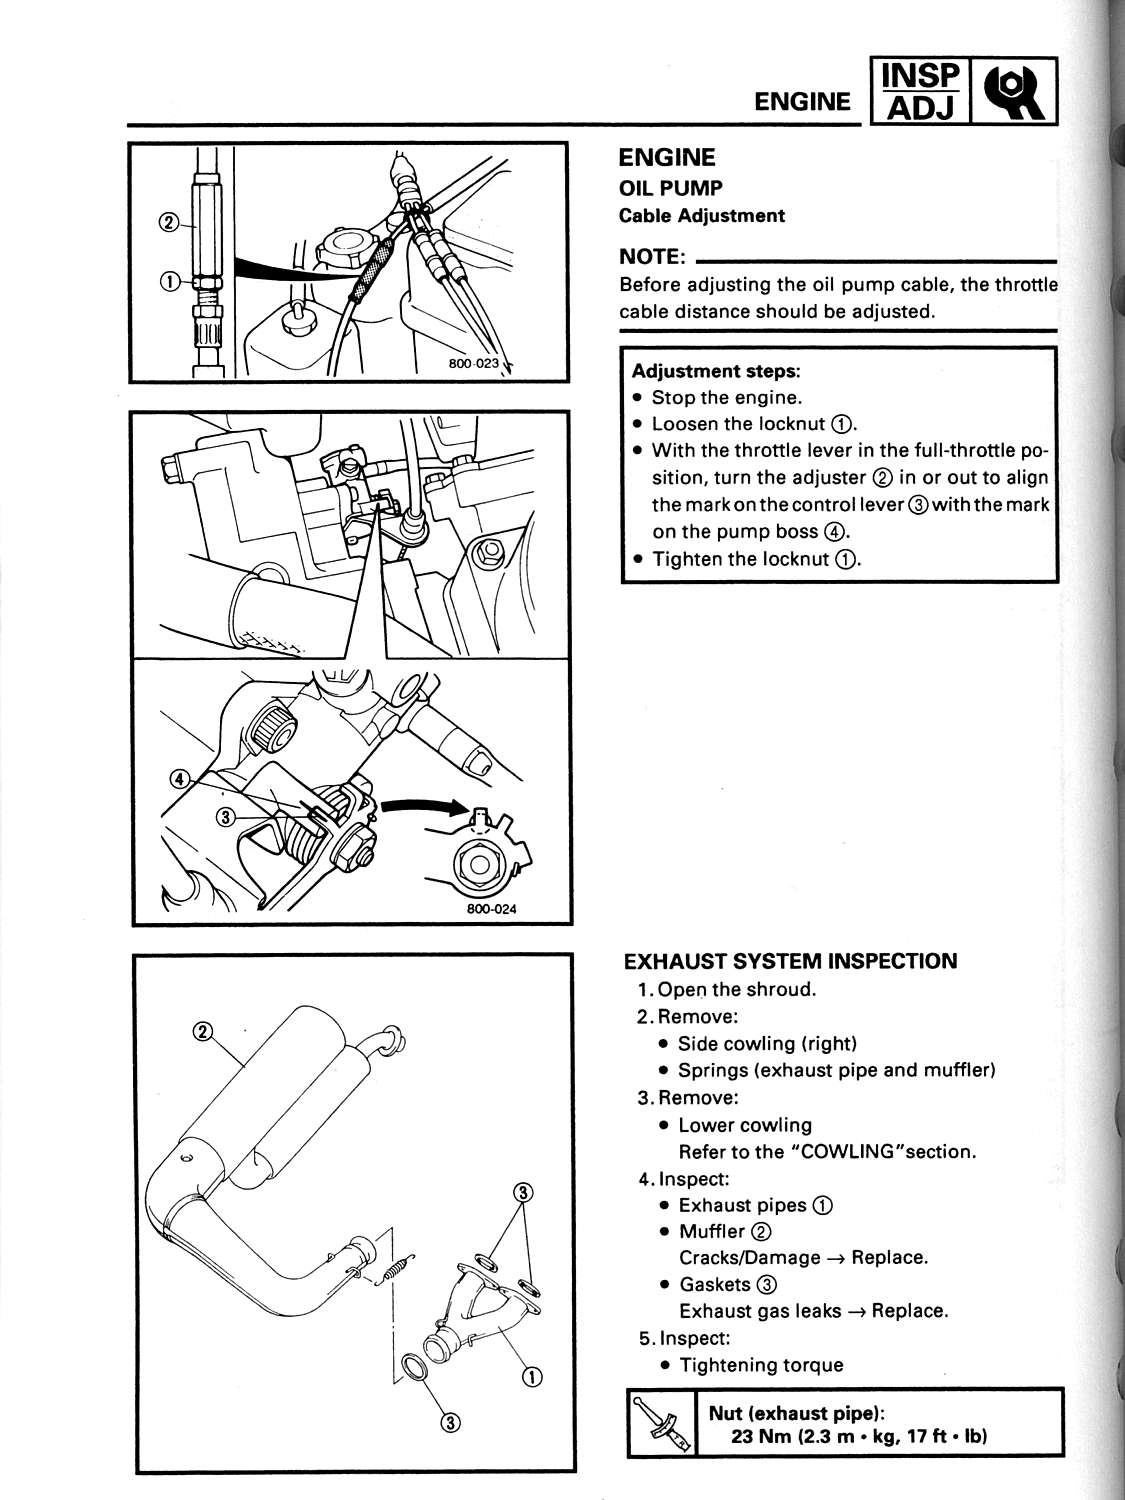 carburetor diagram for 1997 yamaha vmax 600  carburetor  free engine image for user manual download